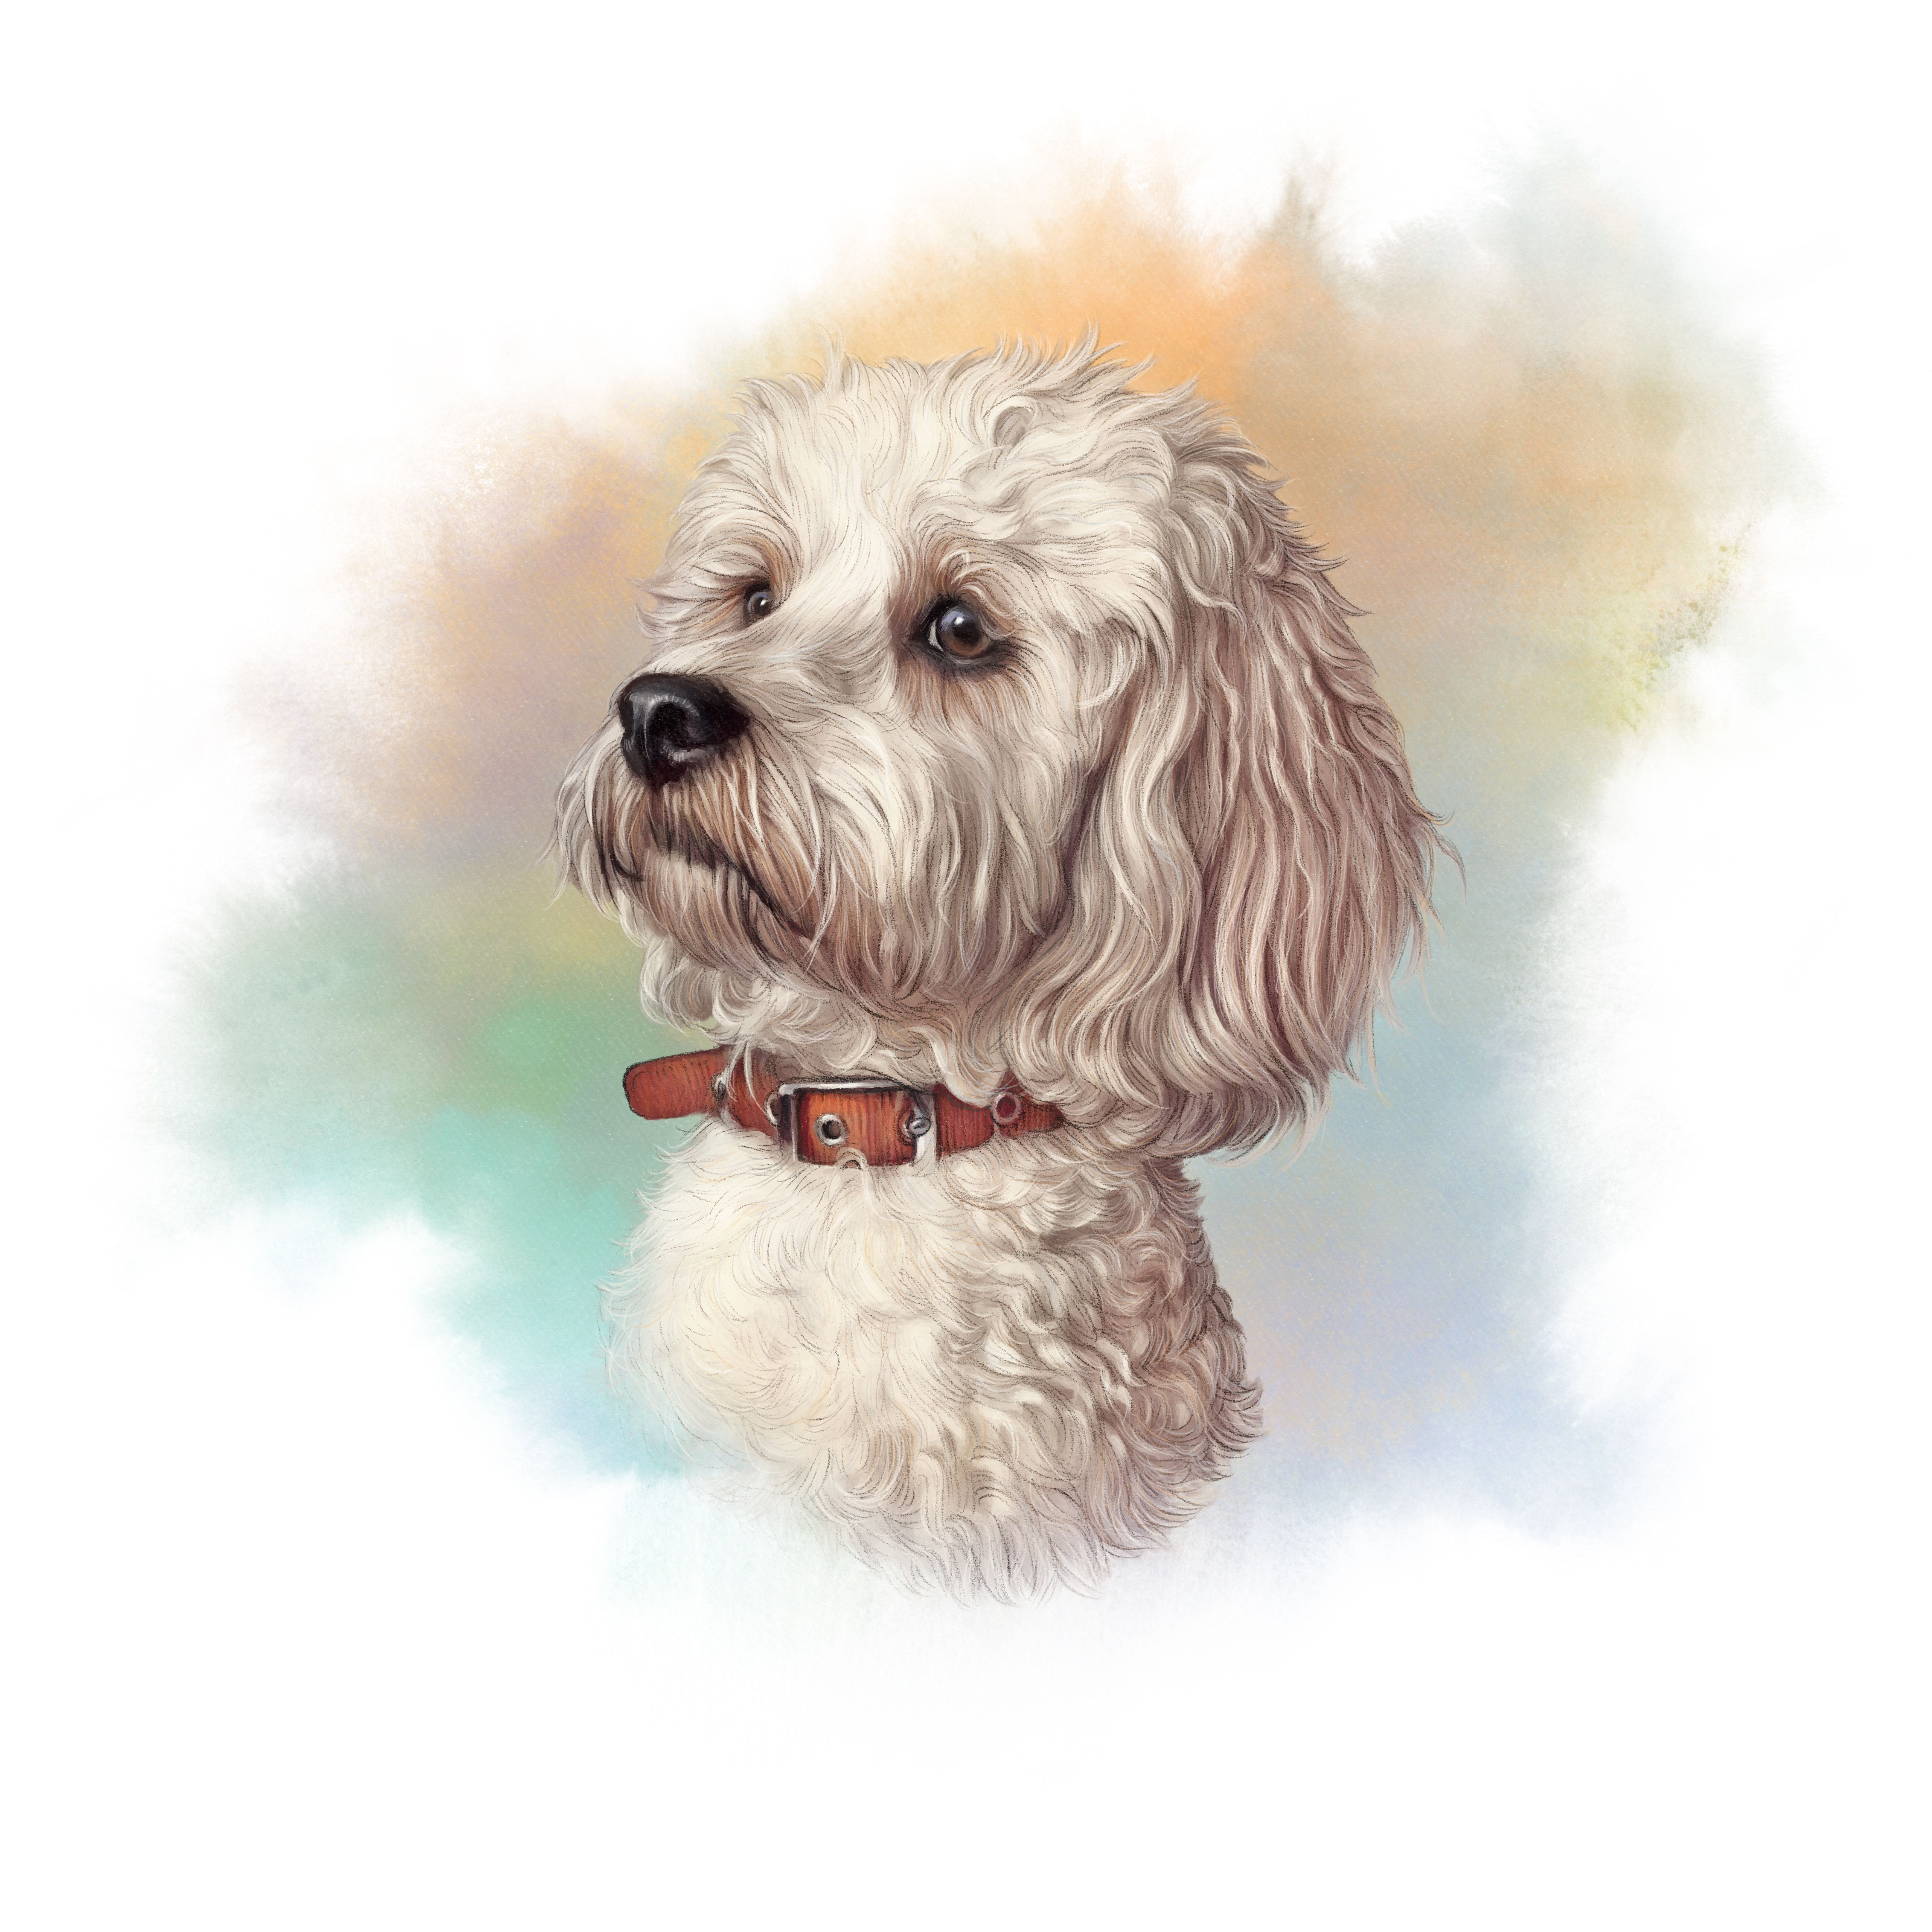 52328f561287 Portrait of Maltese Dog. Toy or Miniature Poodle on watercolor background.  Cute puppy.